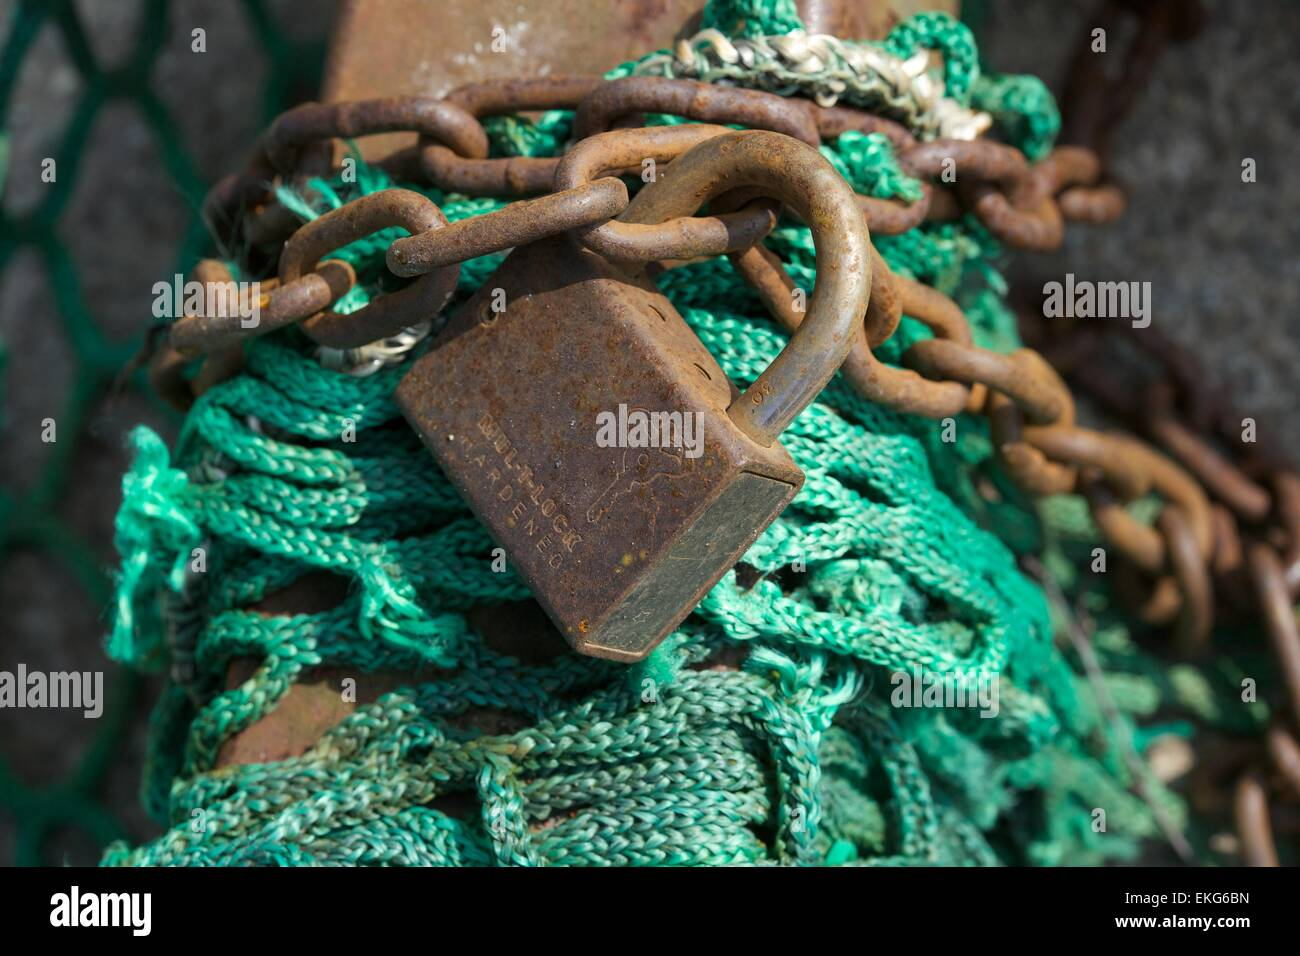 An old padlock on a post with chain and some rope netting - Stock Image